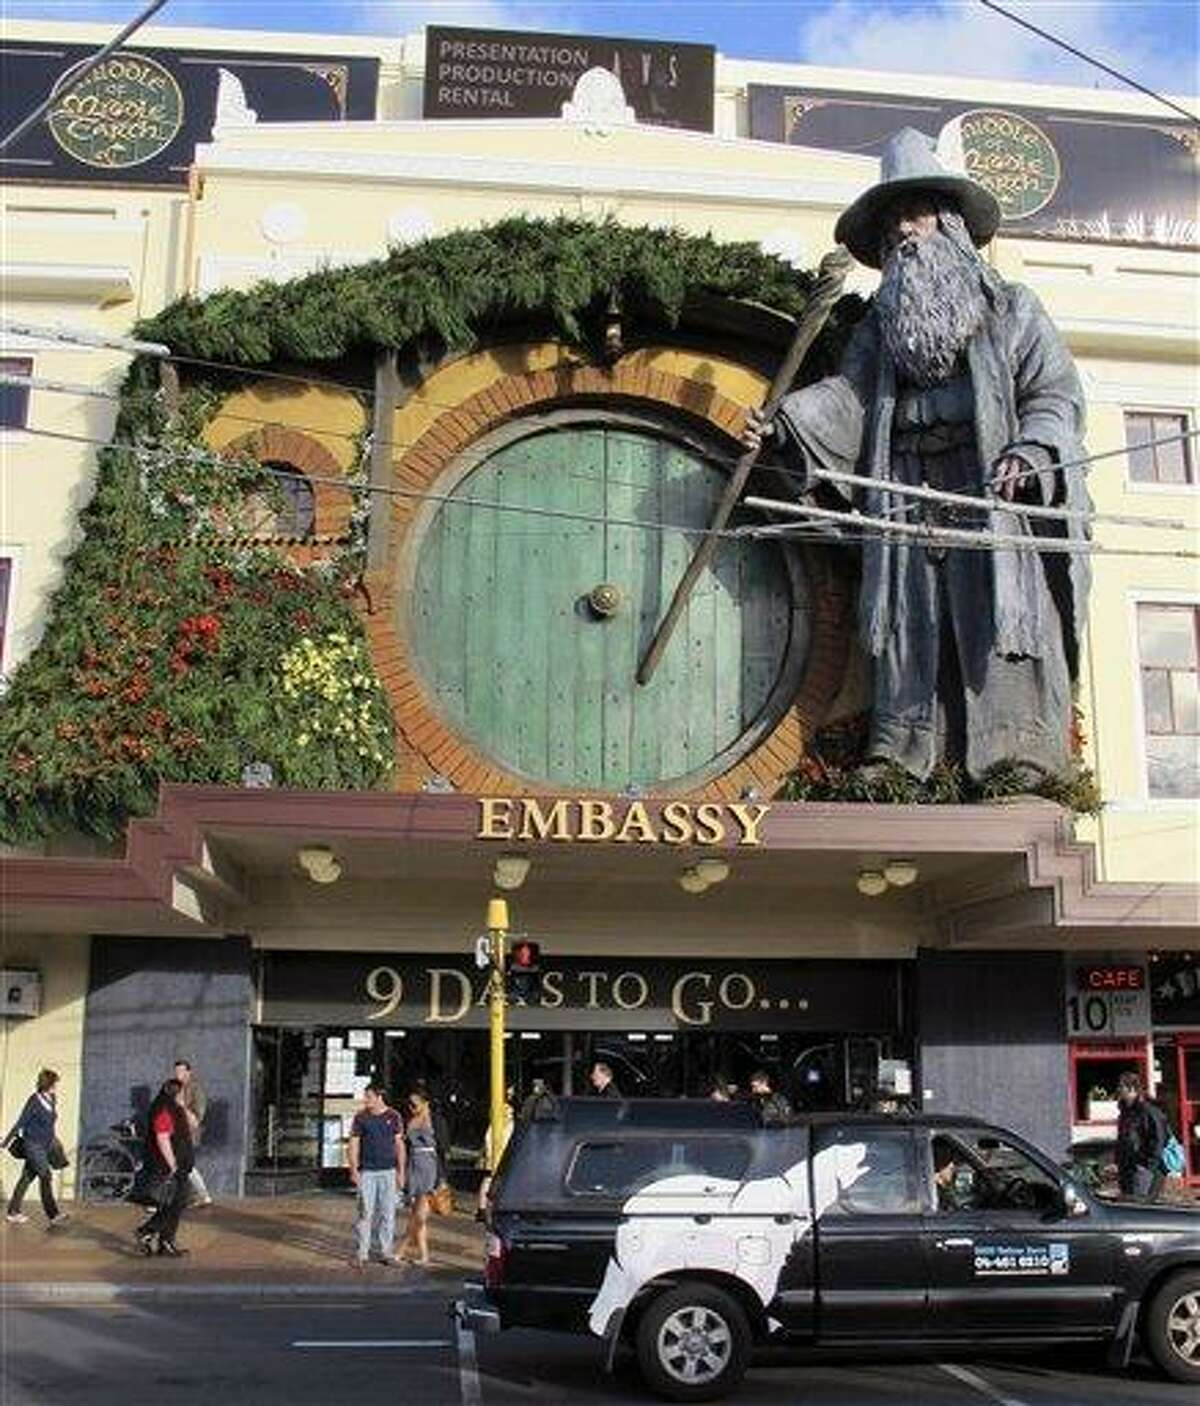 People walk by the Embassy Theater where a giant statue of the character Gandalf from the upcoming movie